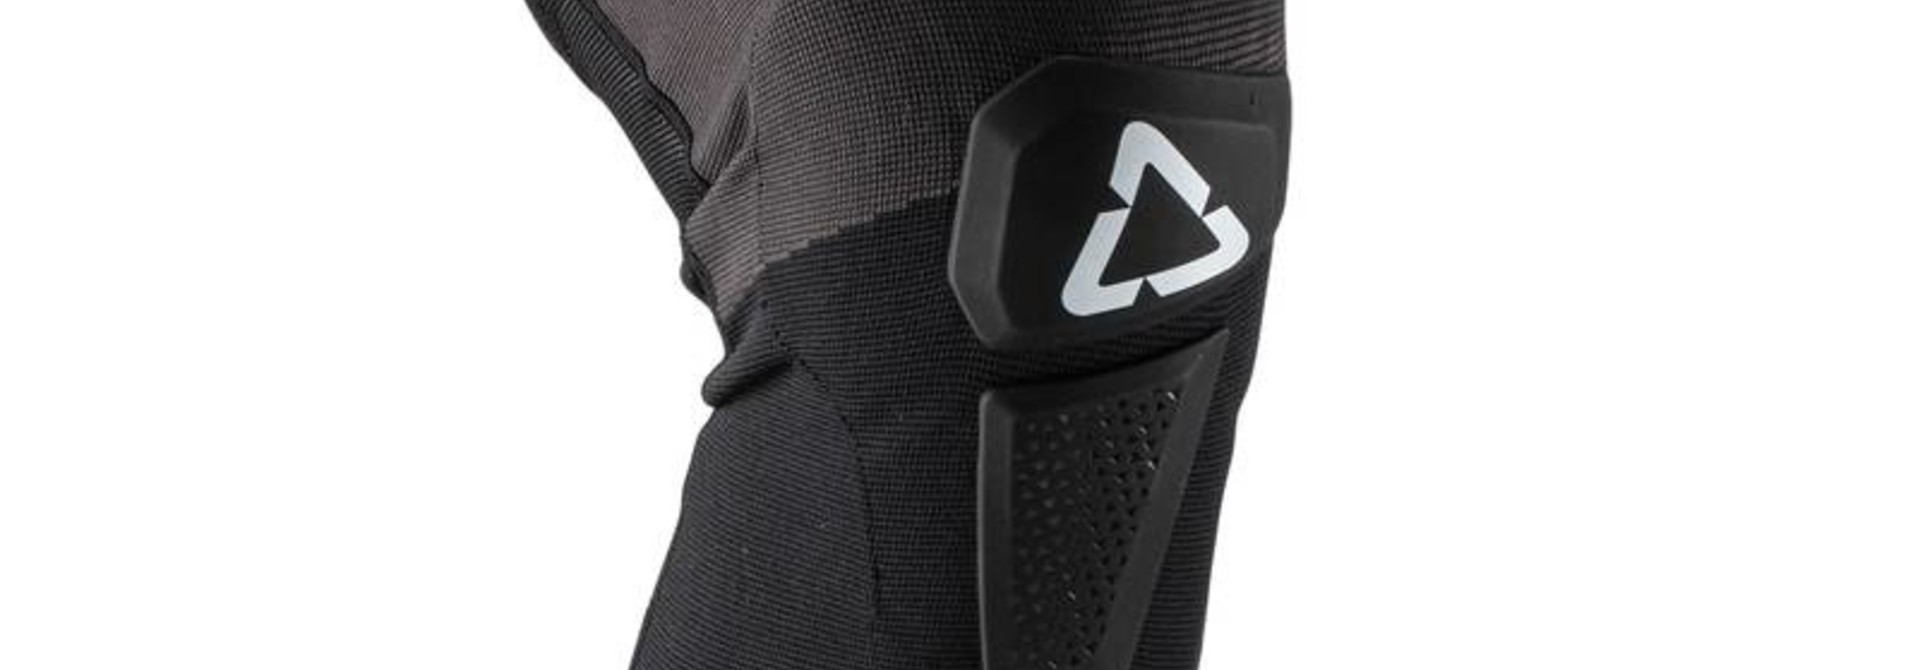 LEATT PROTECTION KNEE GUARD AIRFLEX HYBRID BLACK